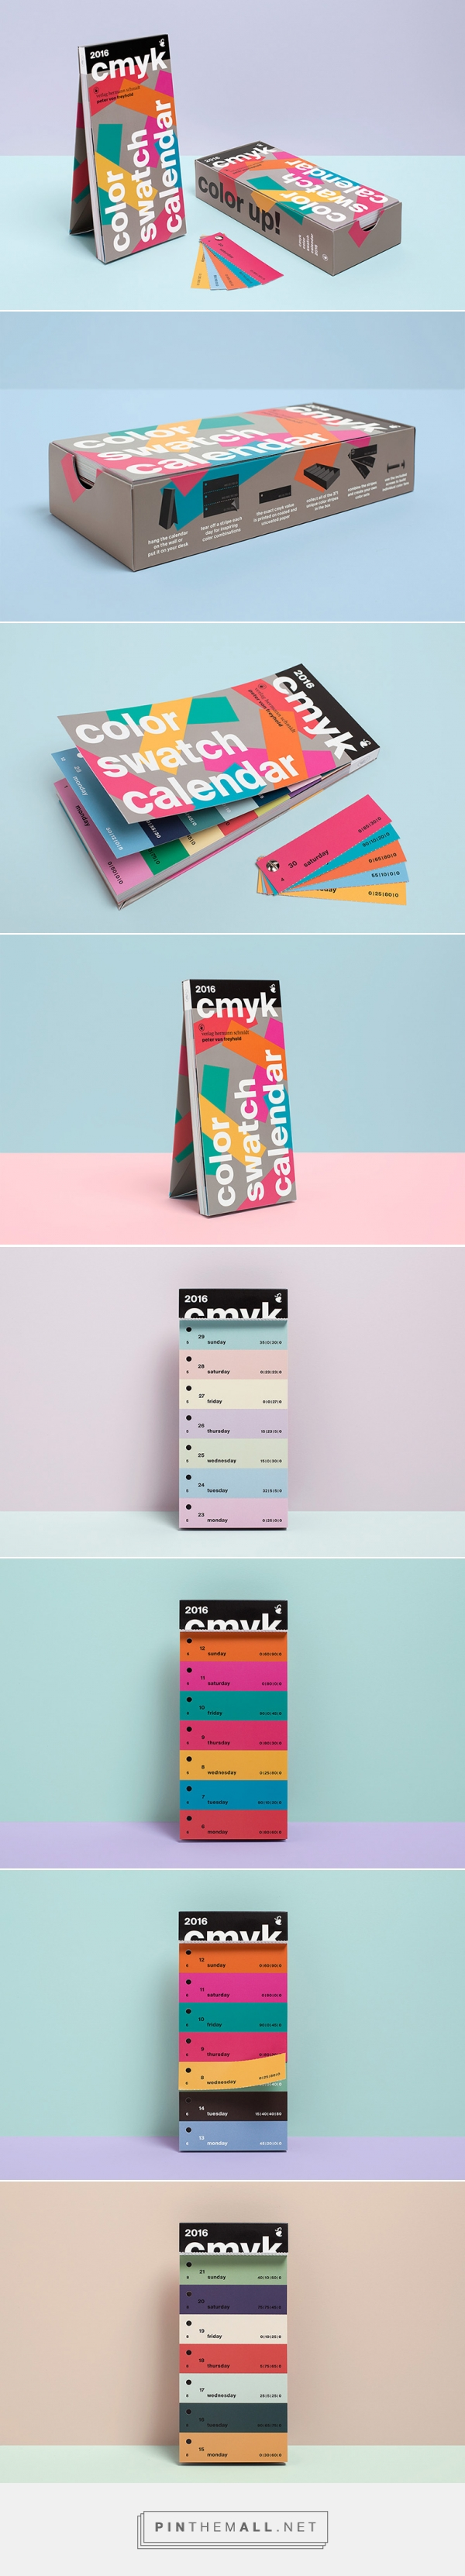 FPO: Color Swatch Calendar 2016 http://www.underconsideration.com/fpo/archives/2015/12/color-swatch-calendar-2016.php - created via https://pinthemall.net